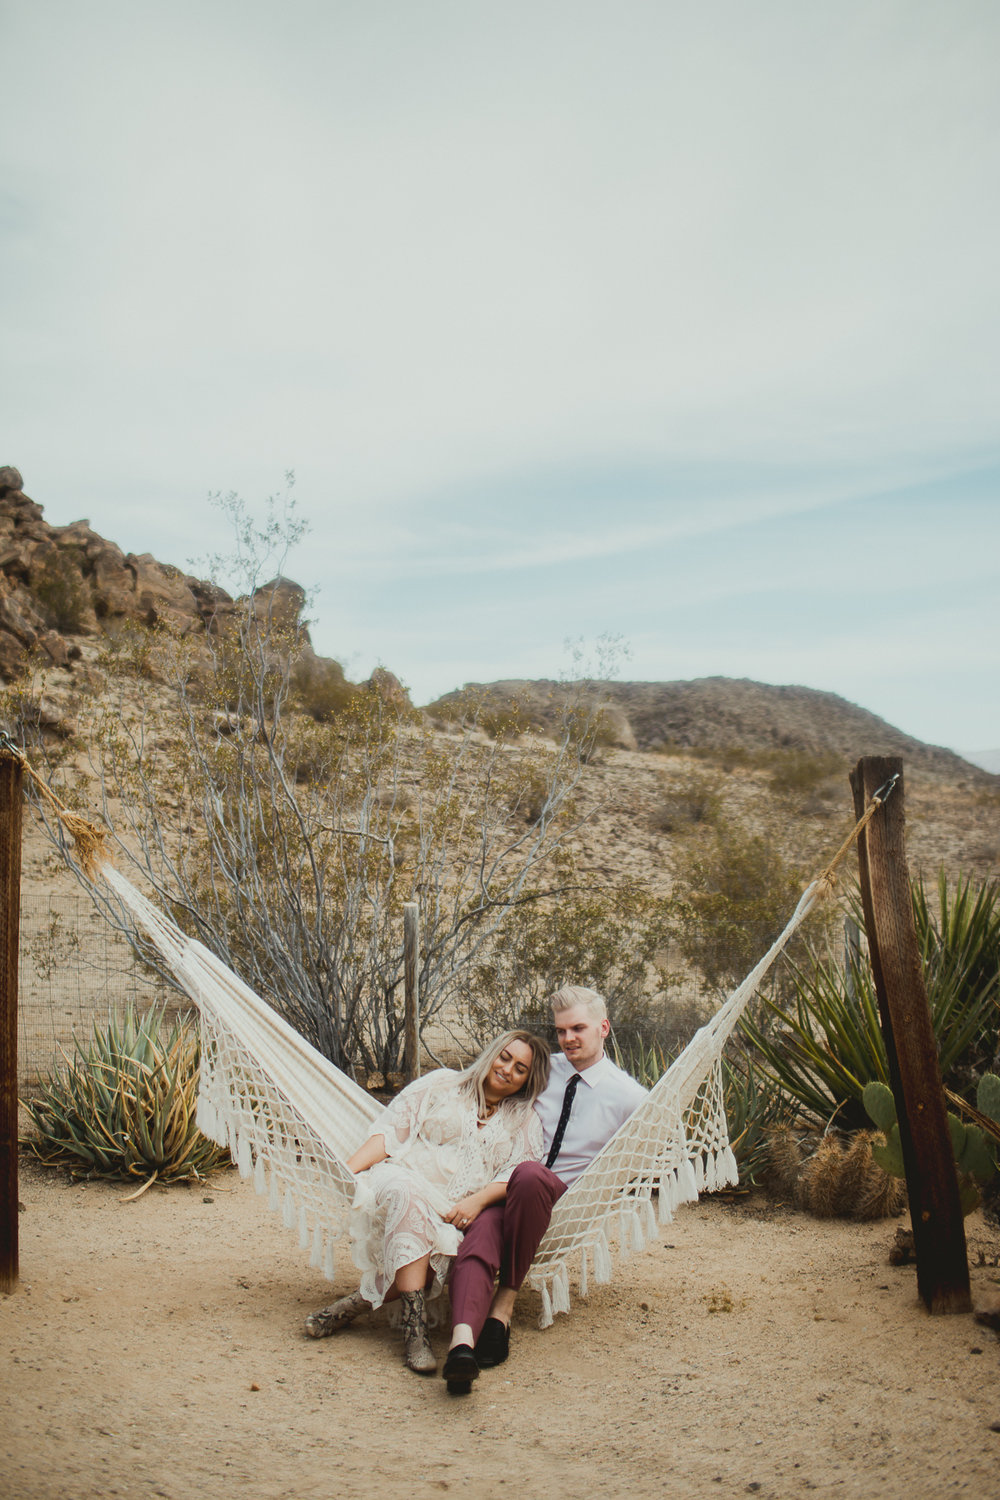 taryn-adam-joshua-tree-elopement-kelley-raye-los-angeles-wedding-photographer-124.jpg